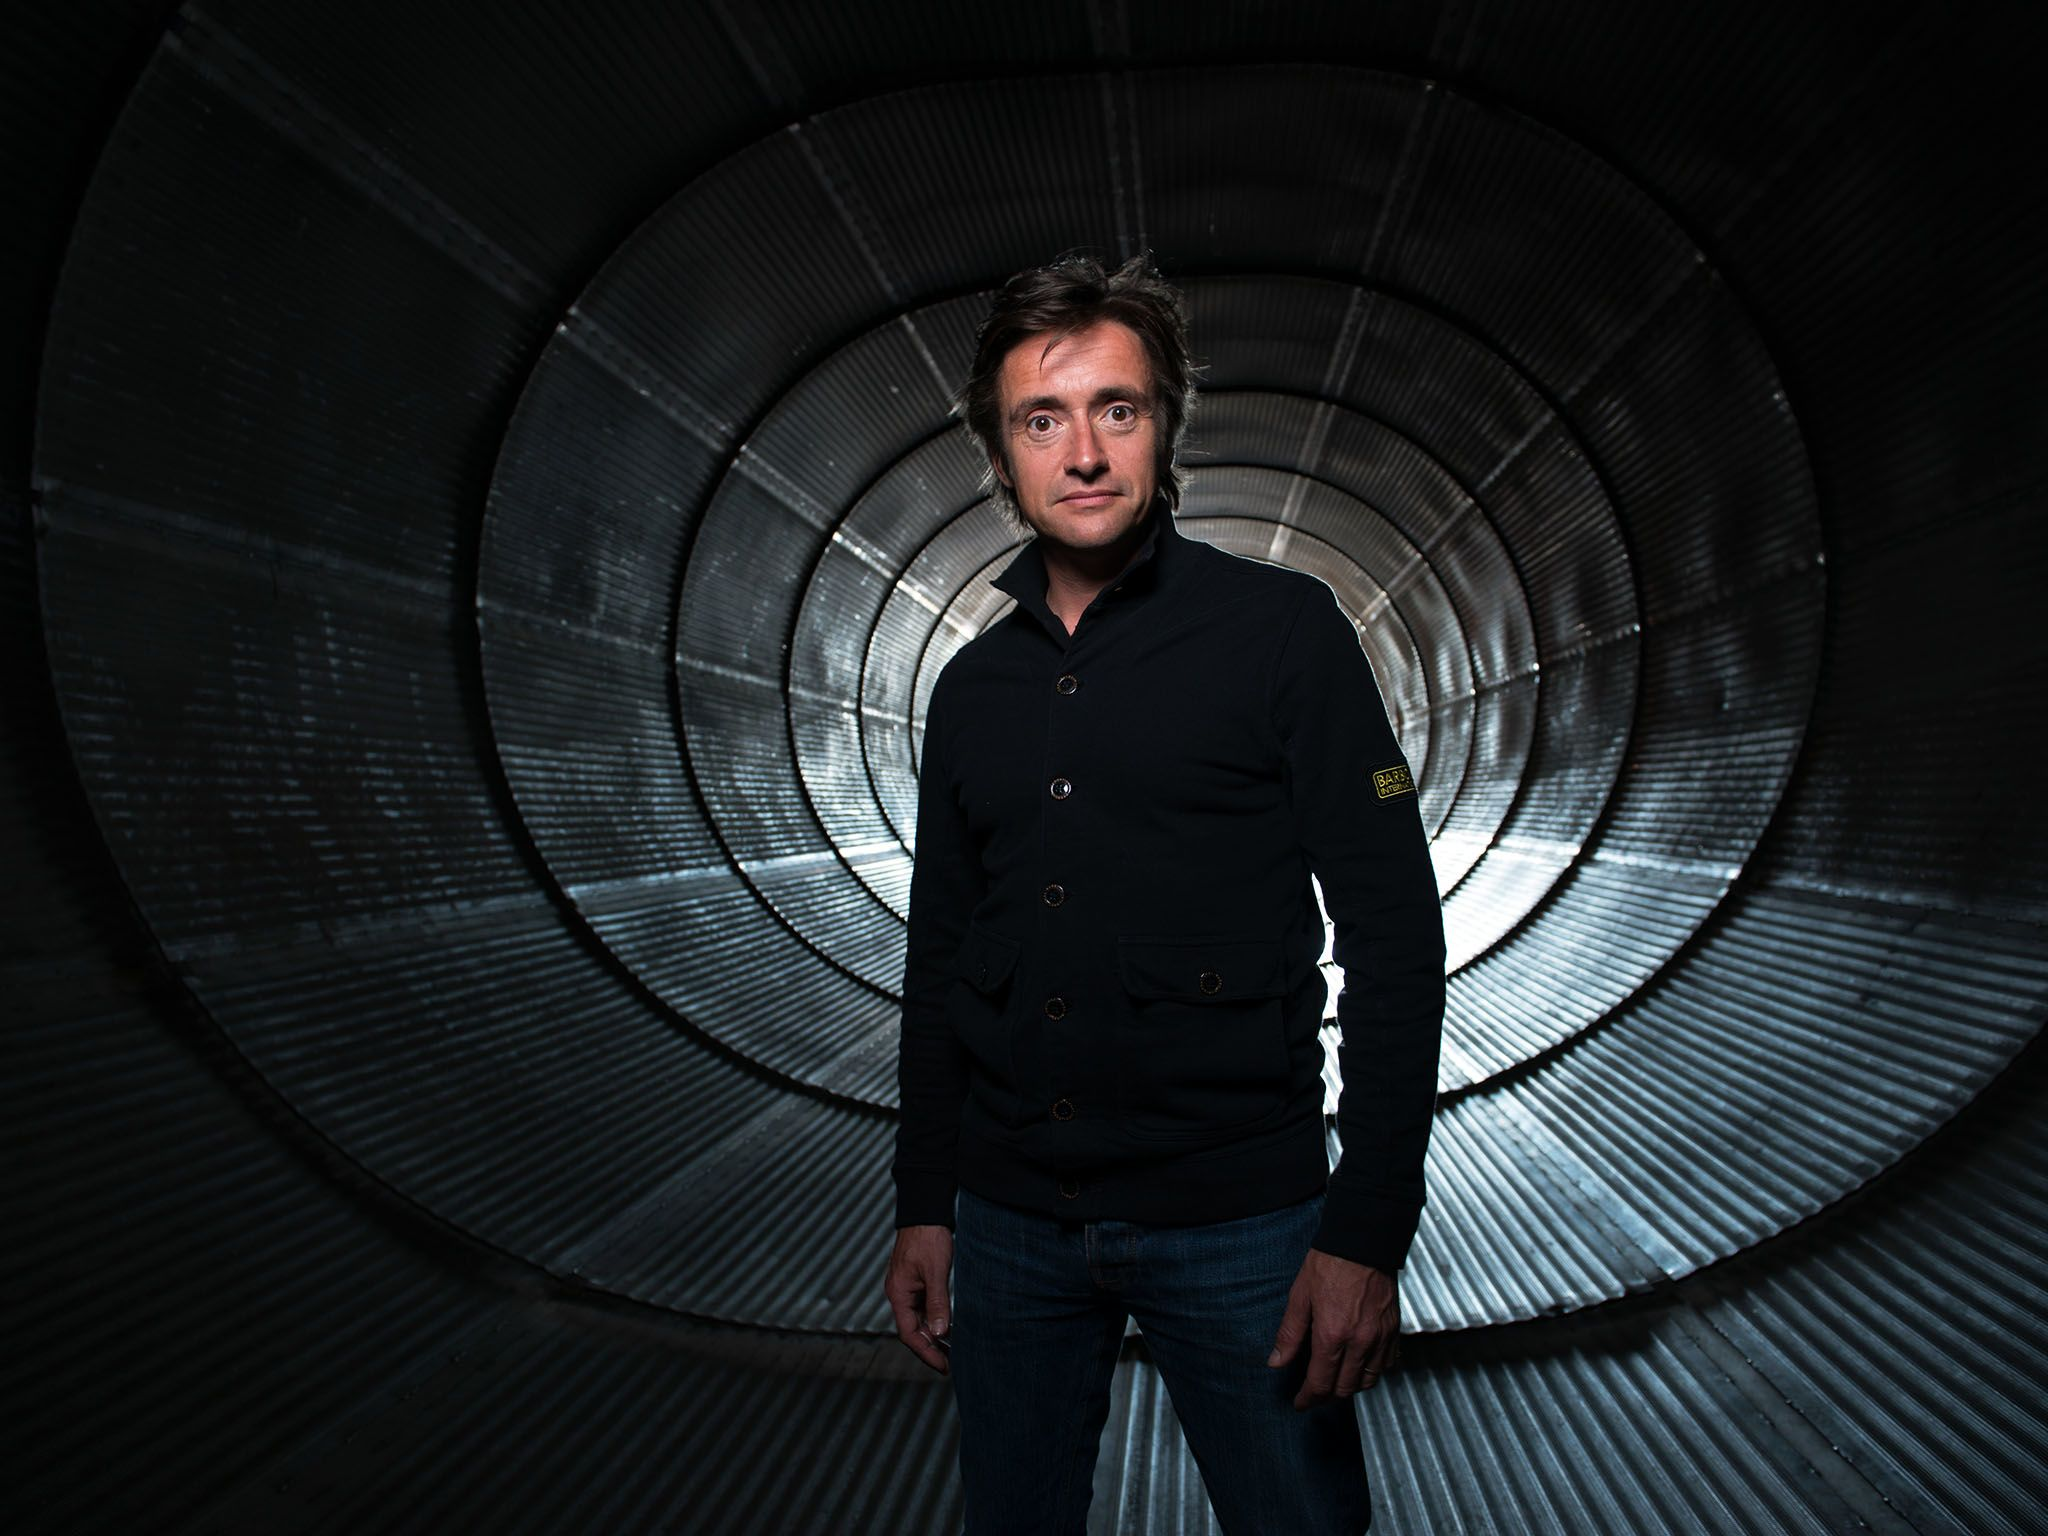 Il conduttore Richard Hammond. [Foto del giorno - August 2015]